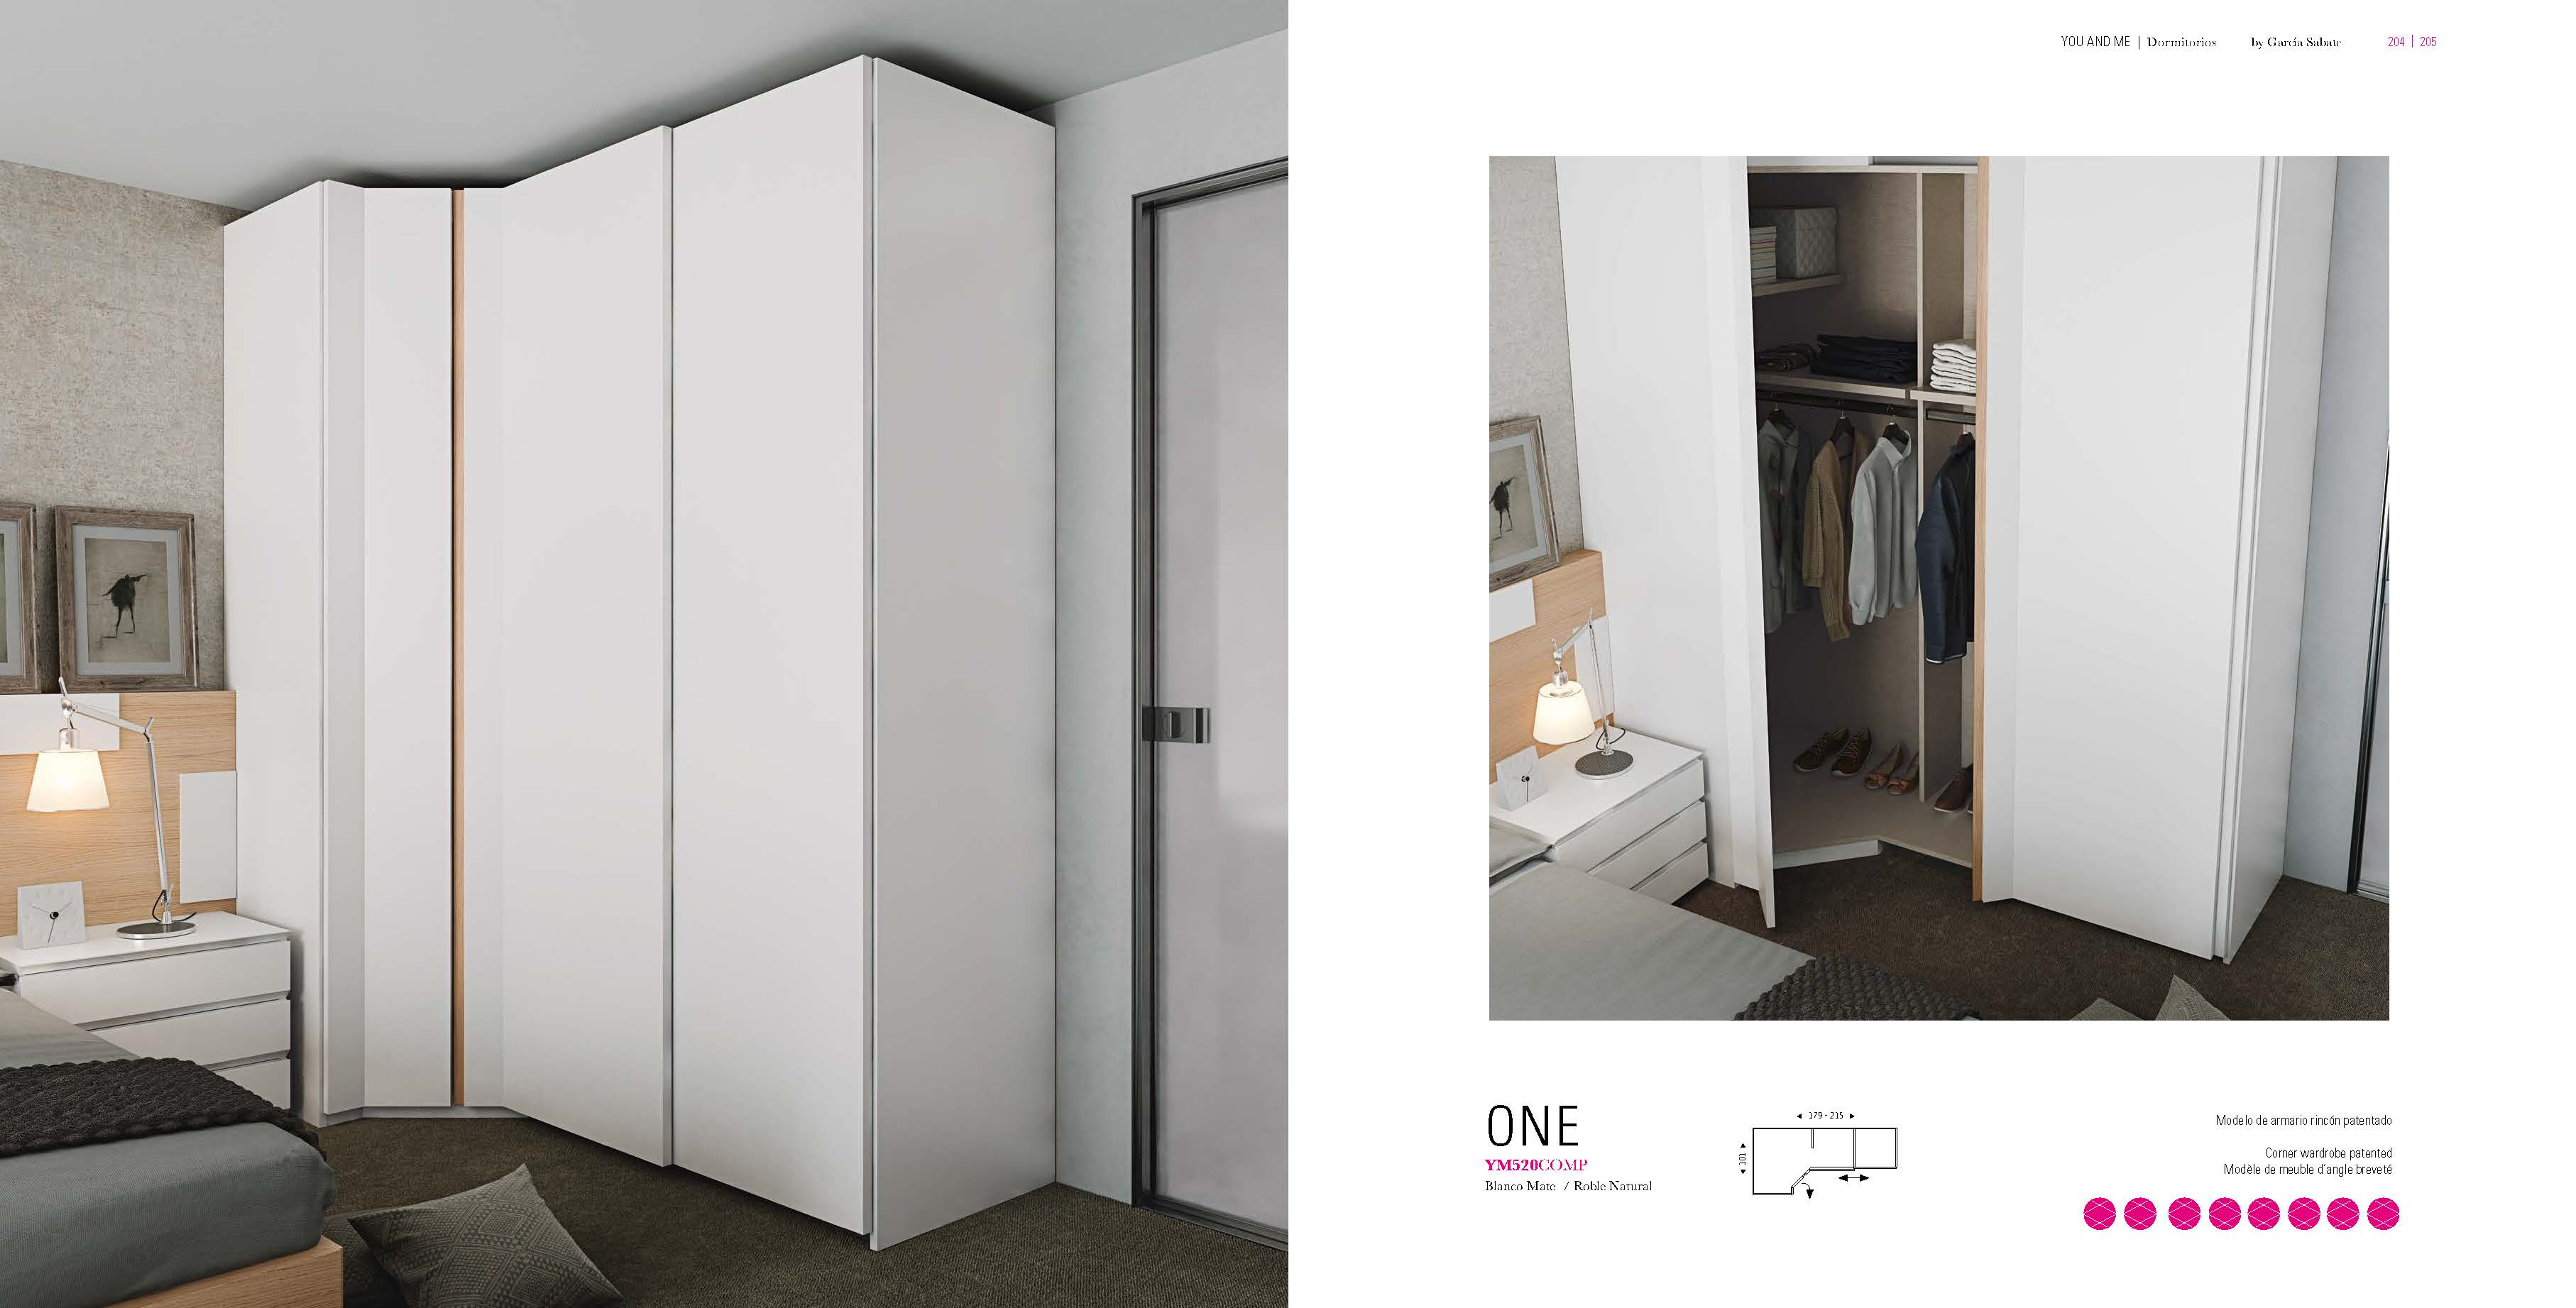 Interiors Meuble D Angle ym520 wardrobes, classic bedrooms, bedroom furniture